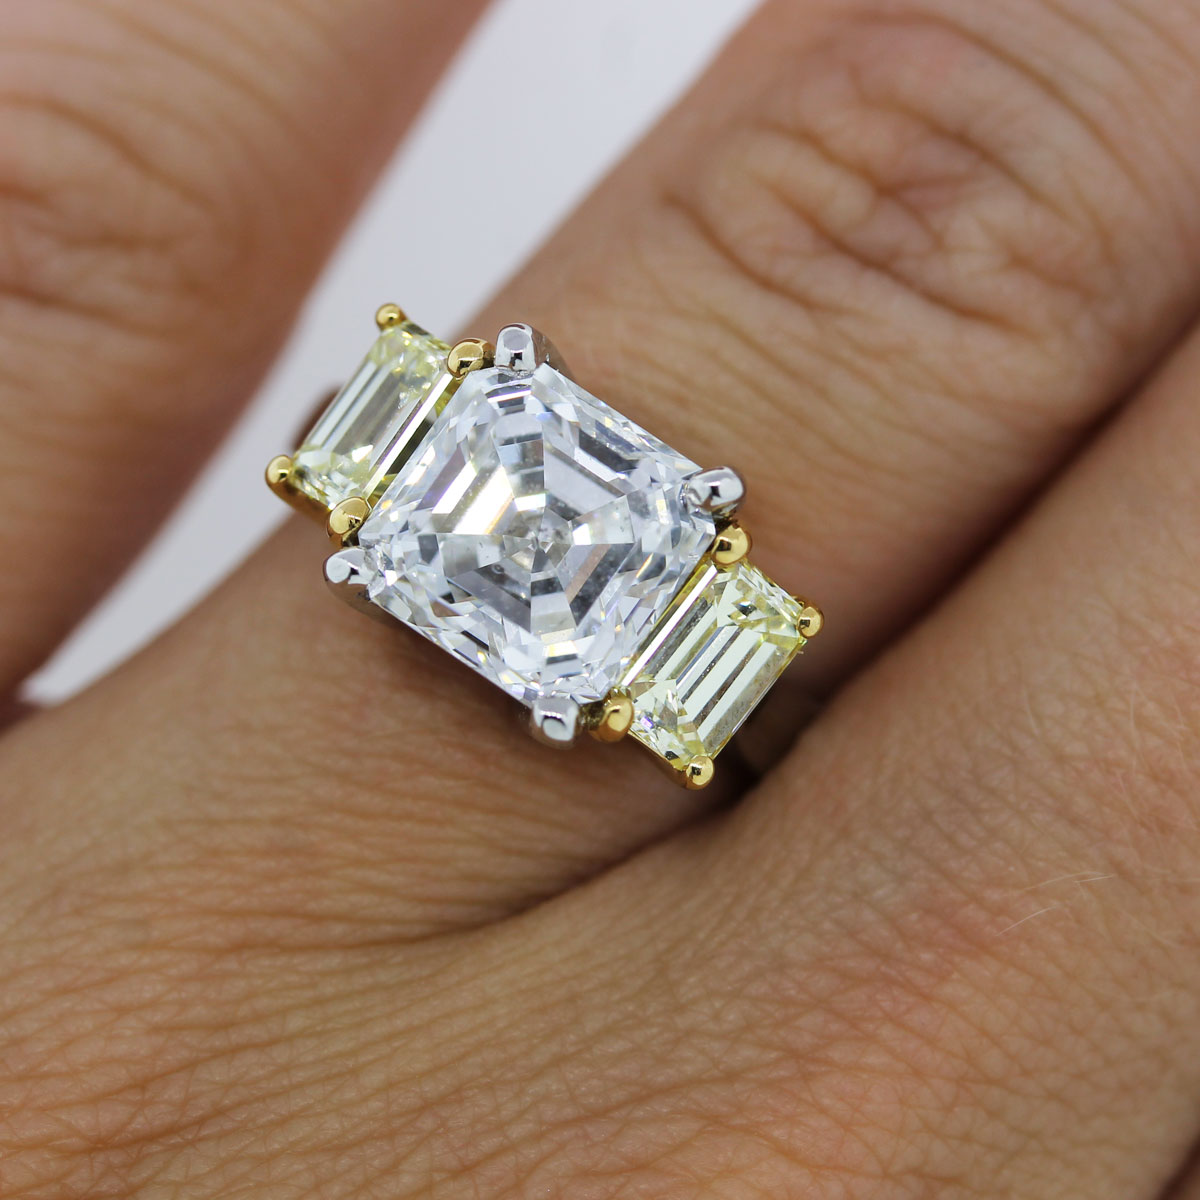 Platinum and 18k Yellow Gold 3.18ct Asscher Cut Three Stone Diamond Ring